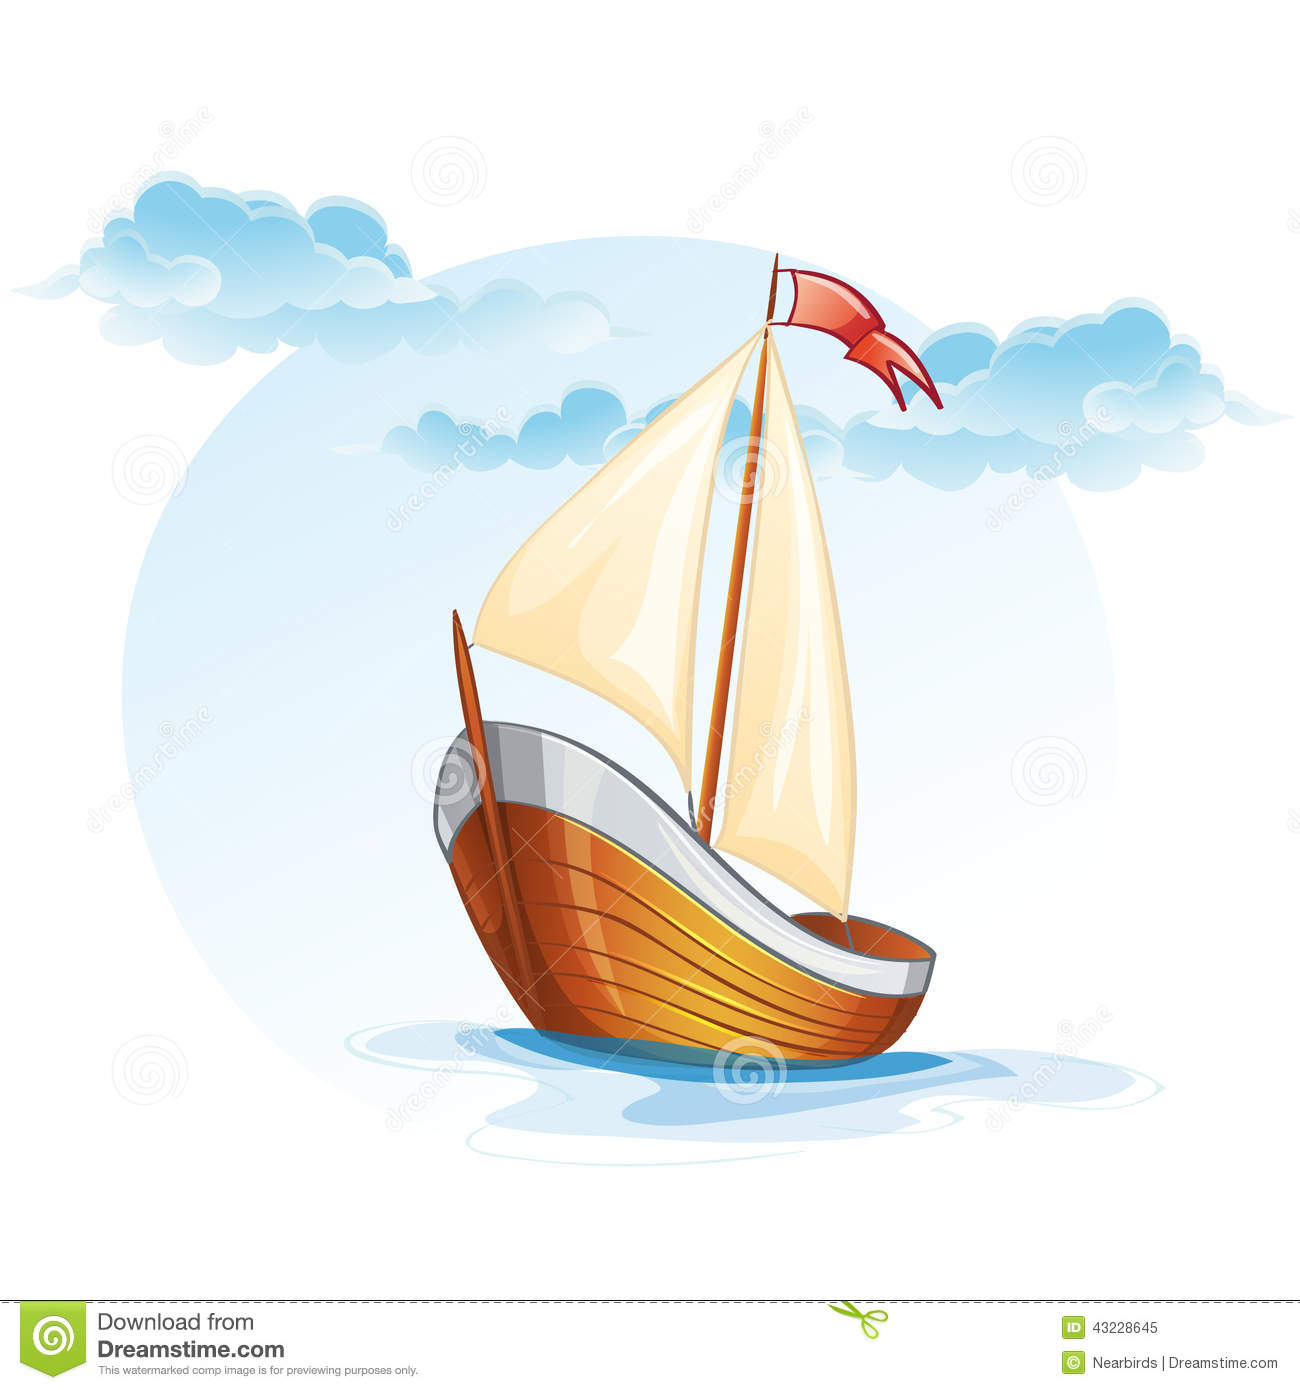 Cartoon Image Of A Wooden Sailing Boat Stock Vector - Image: 43228645